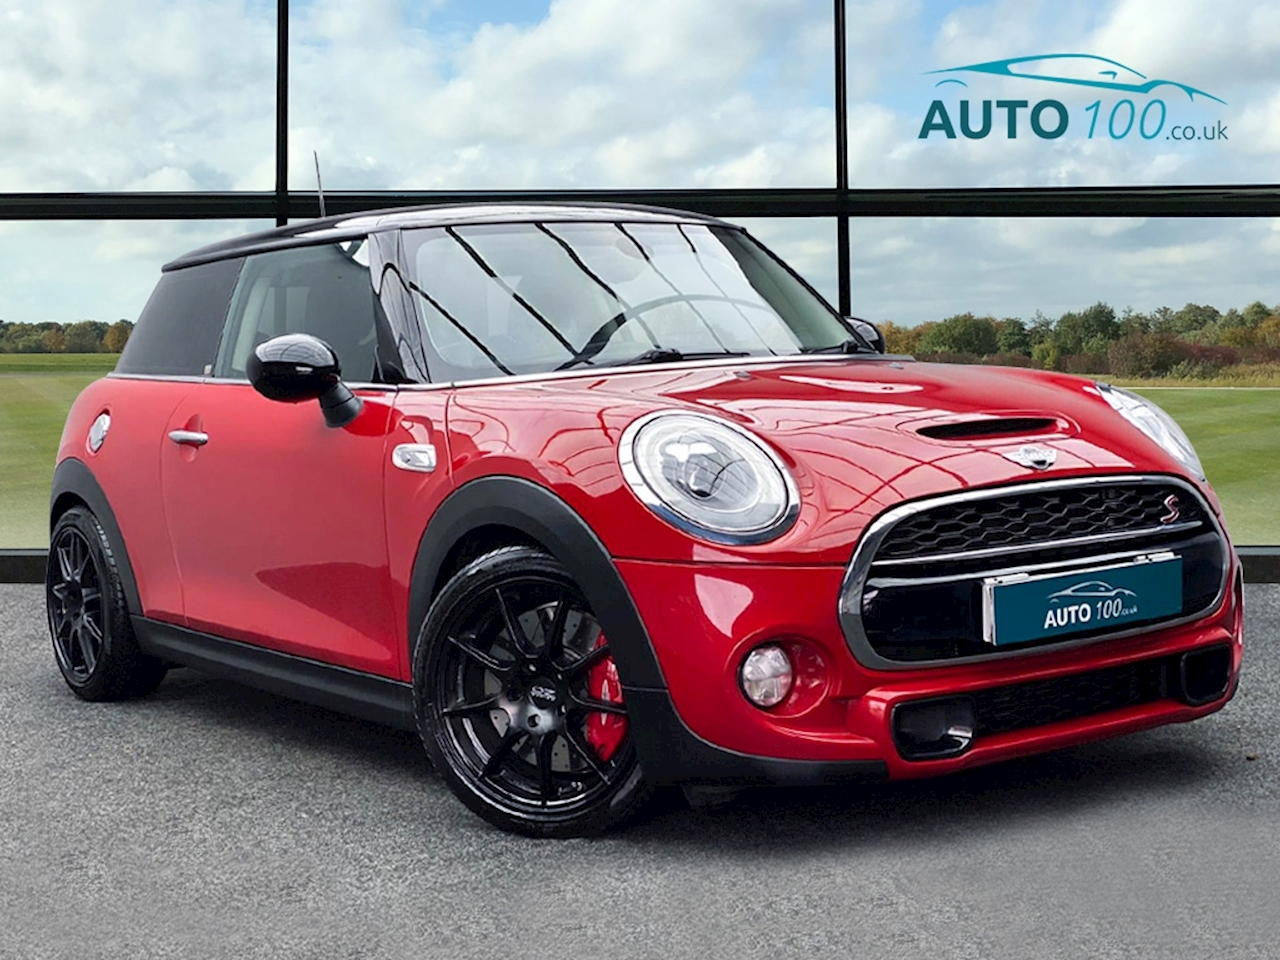 MINI Hatch Cooper S 3-Door Hatch Hatchback 2.0 Automatic Petrol